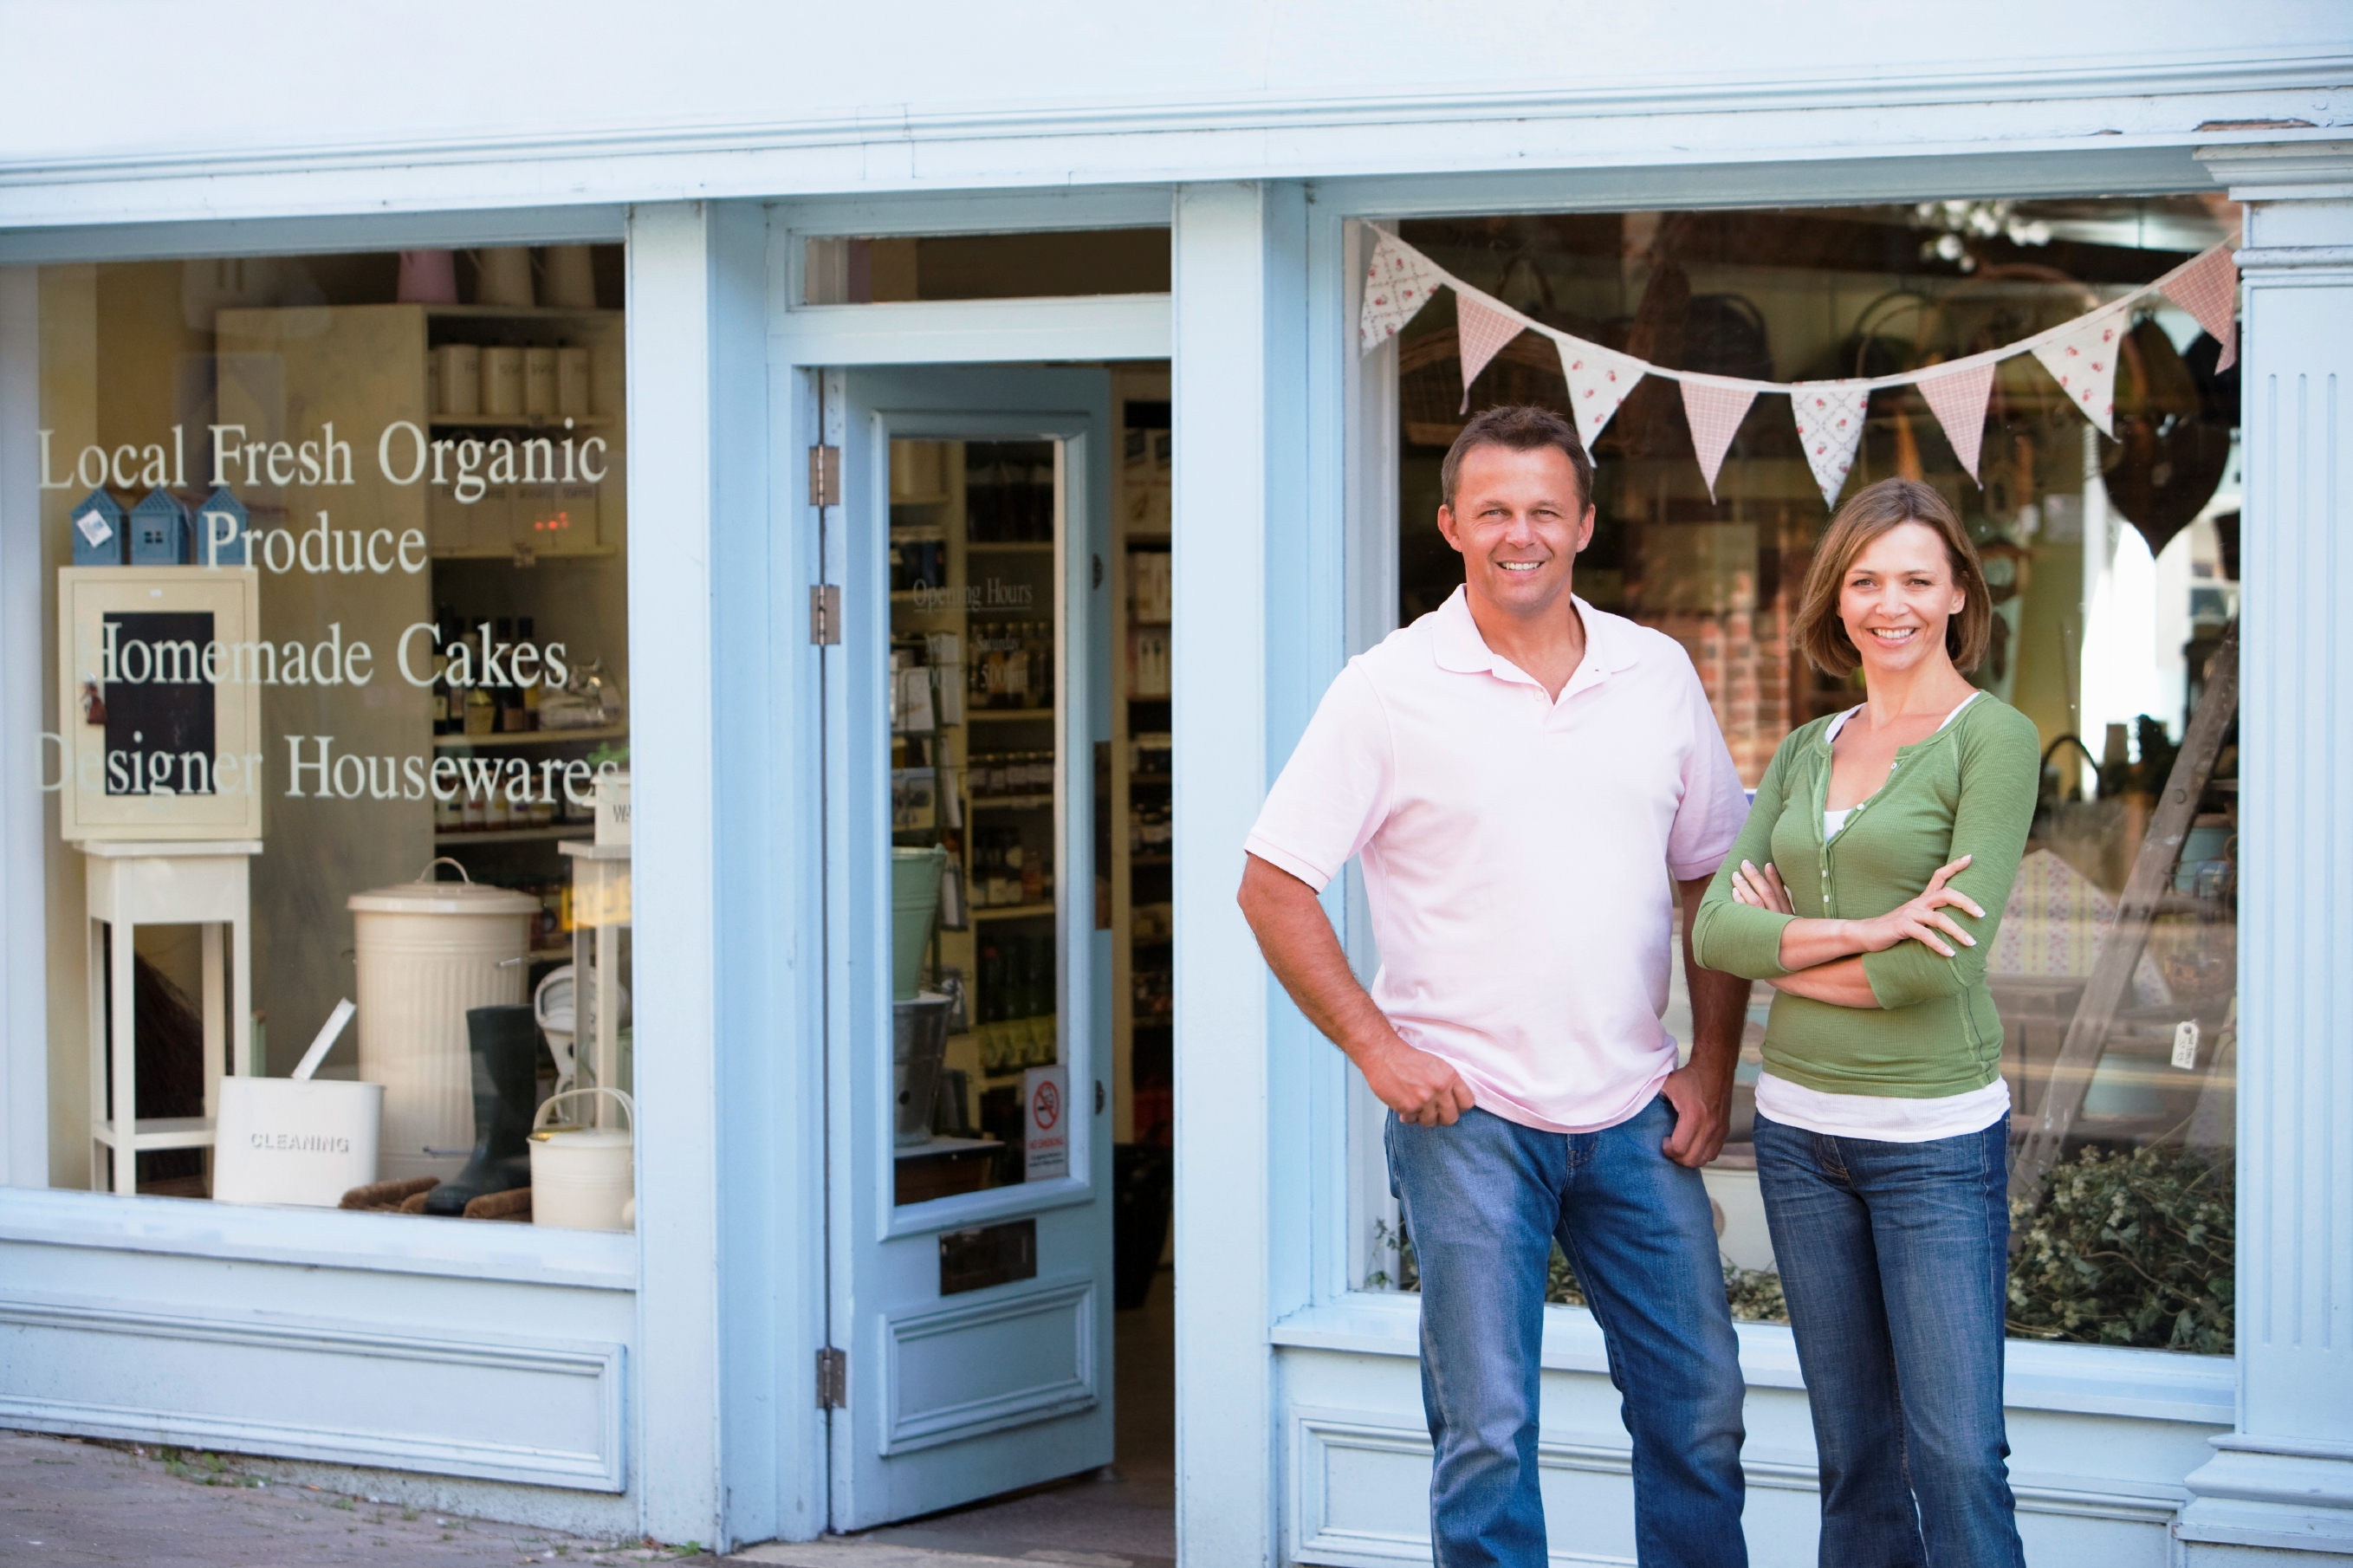 Opening a small business?